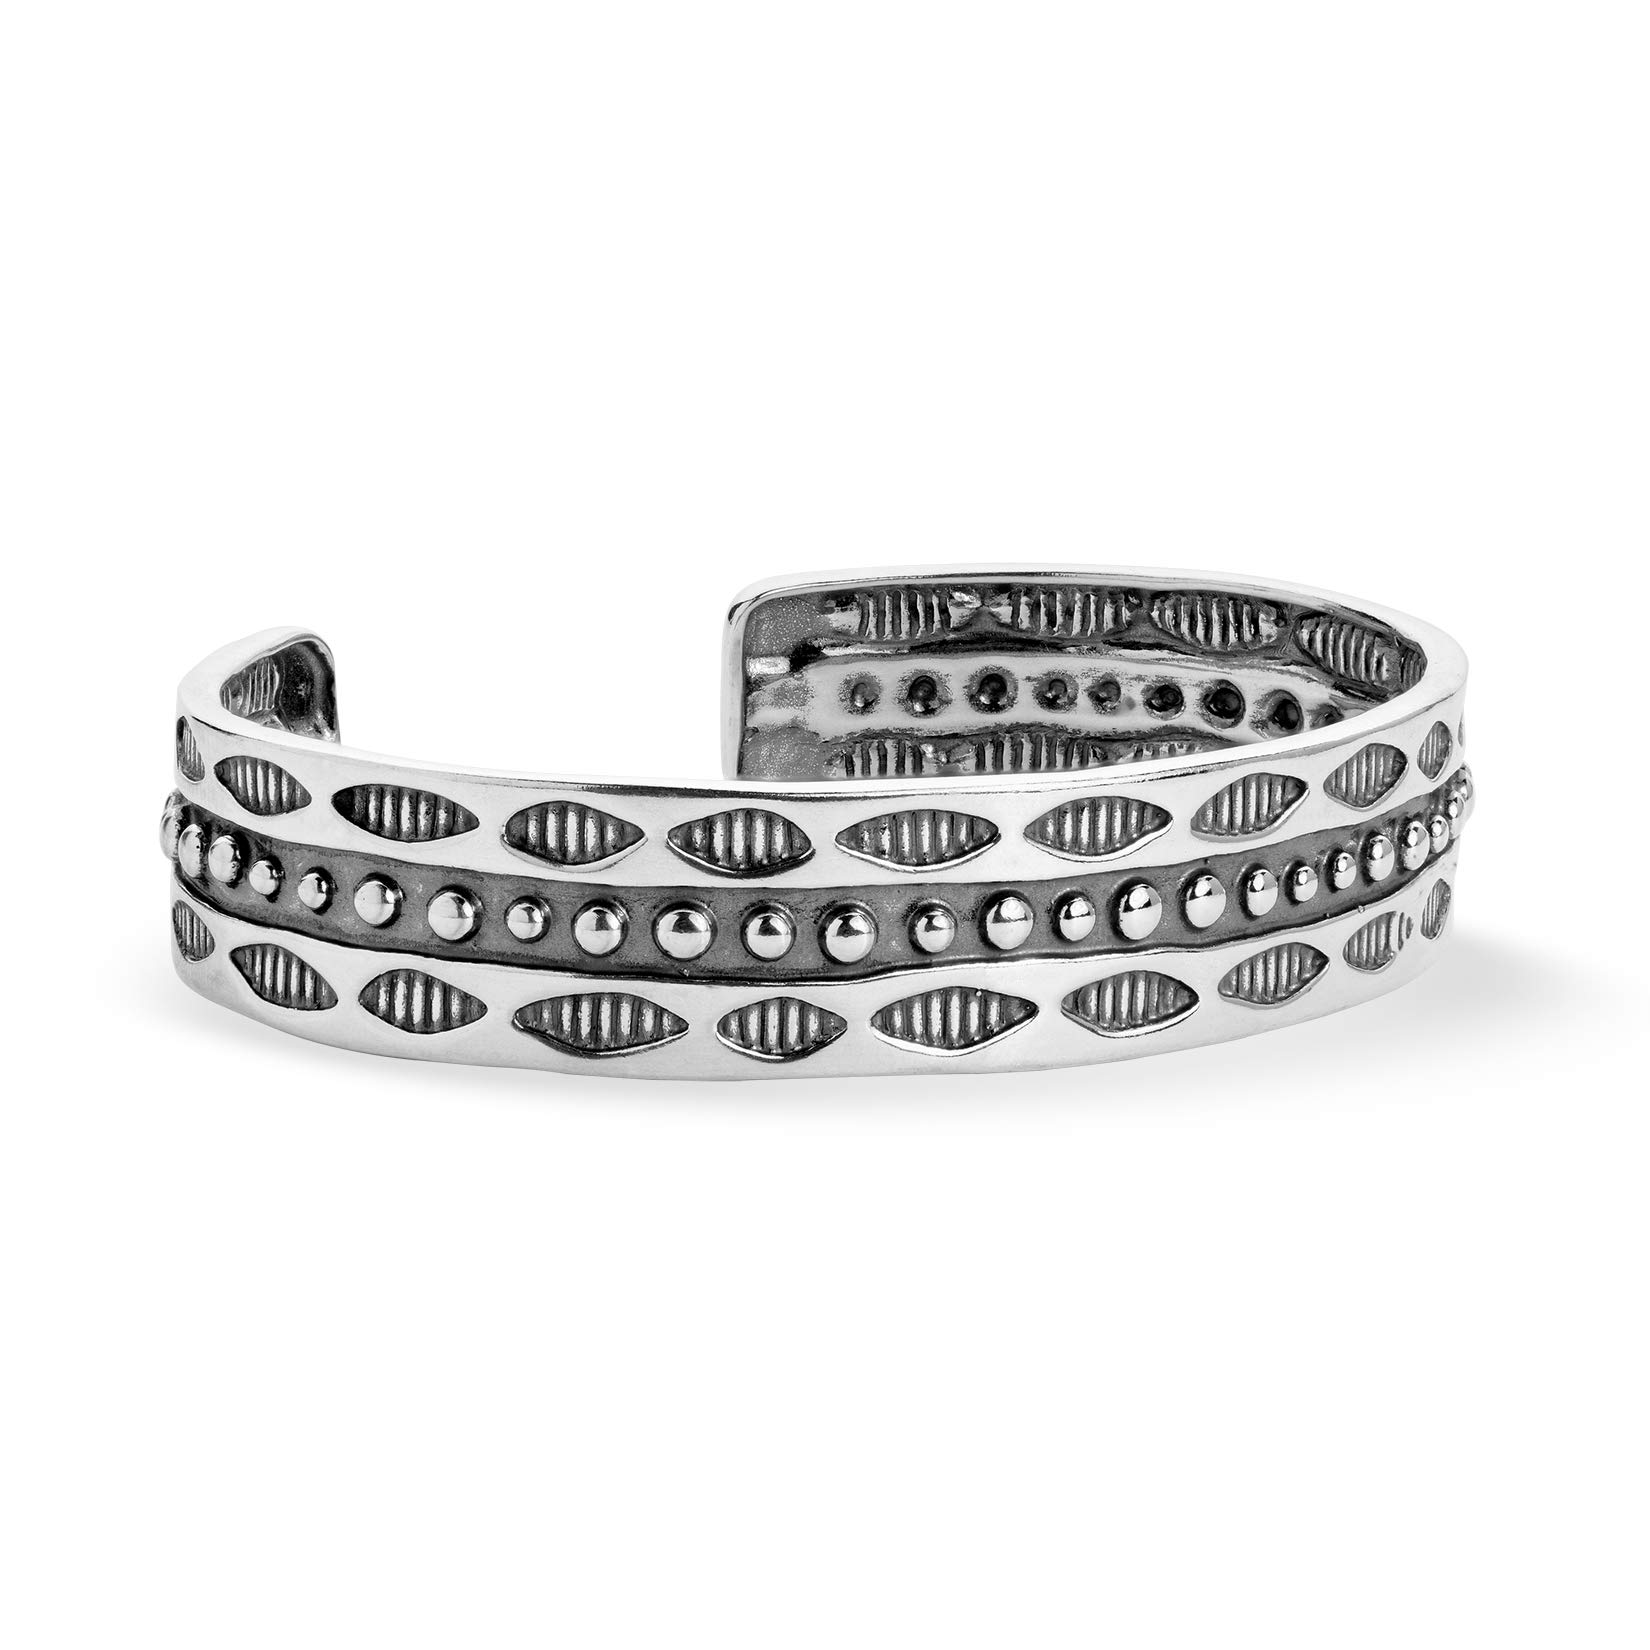 American West Oxidized 925 Sterling Silver Beaded & Grooved Window 1/2'' Wide Cuff Bracelet, Large (7''-7.25'')